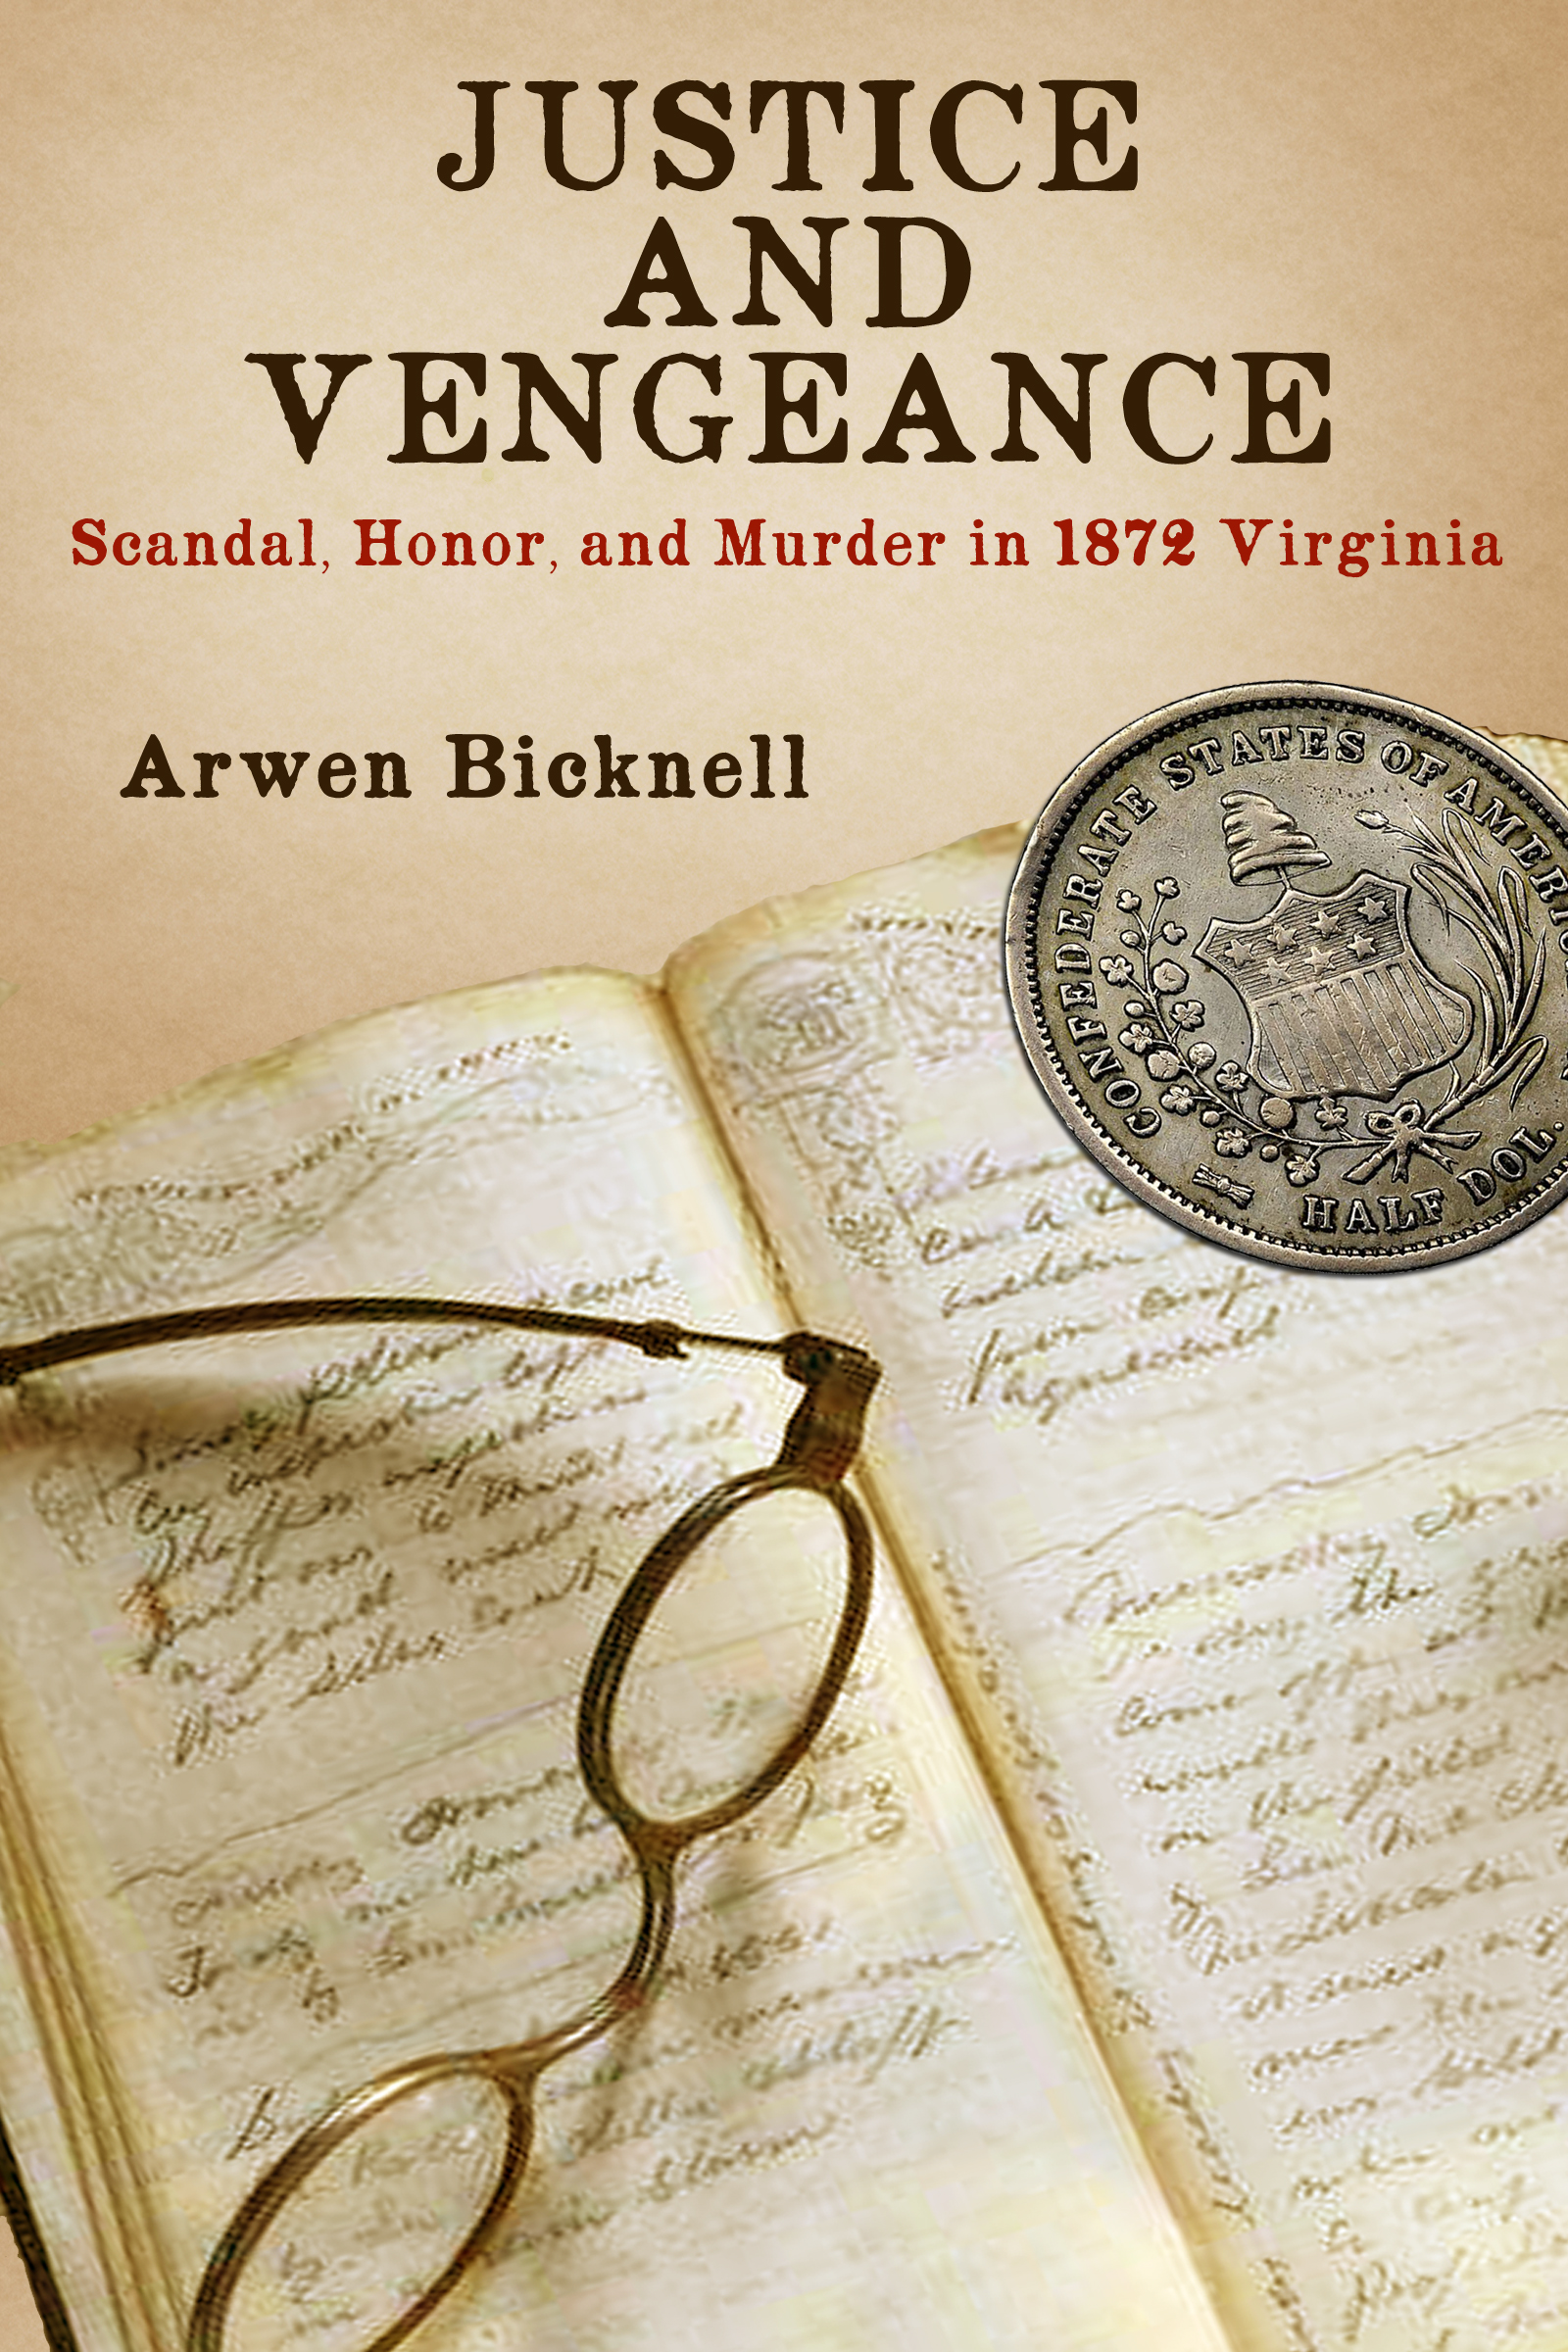 Justice and Vengeance by Arwen Bicknell